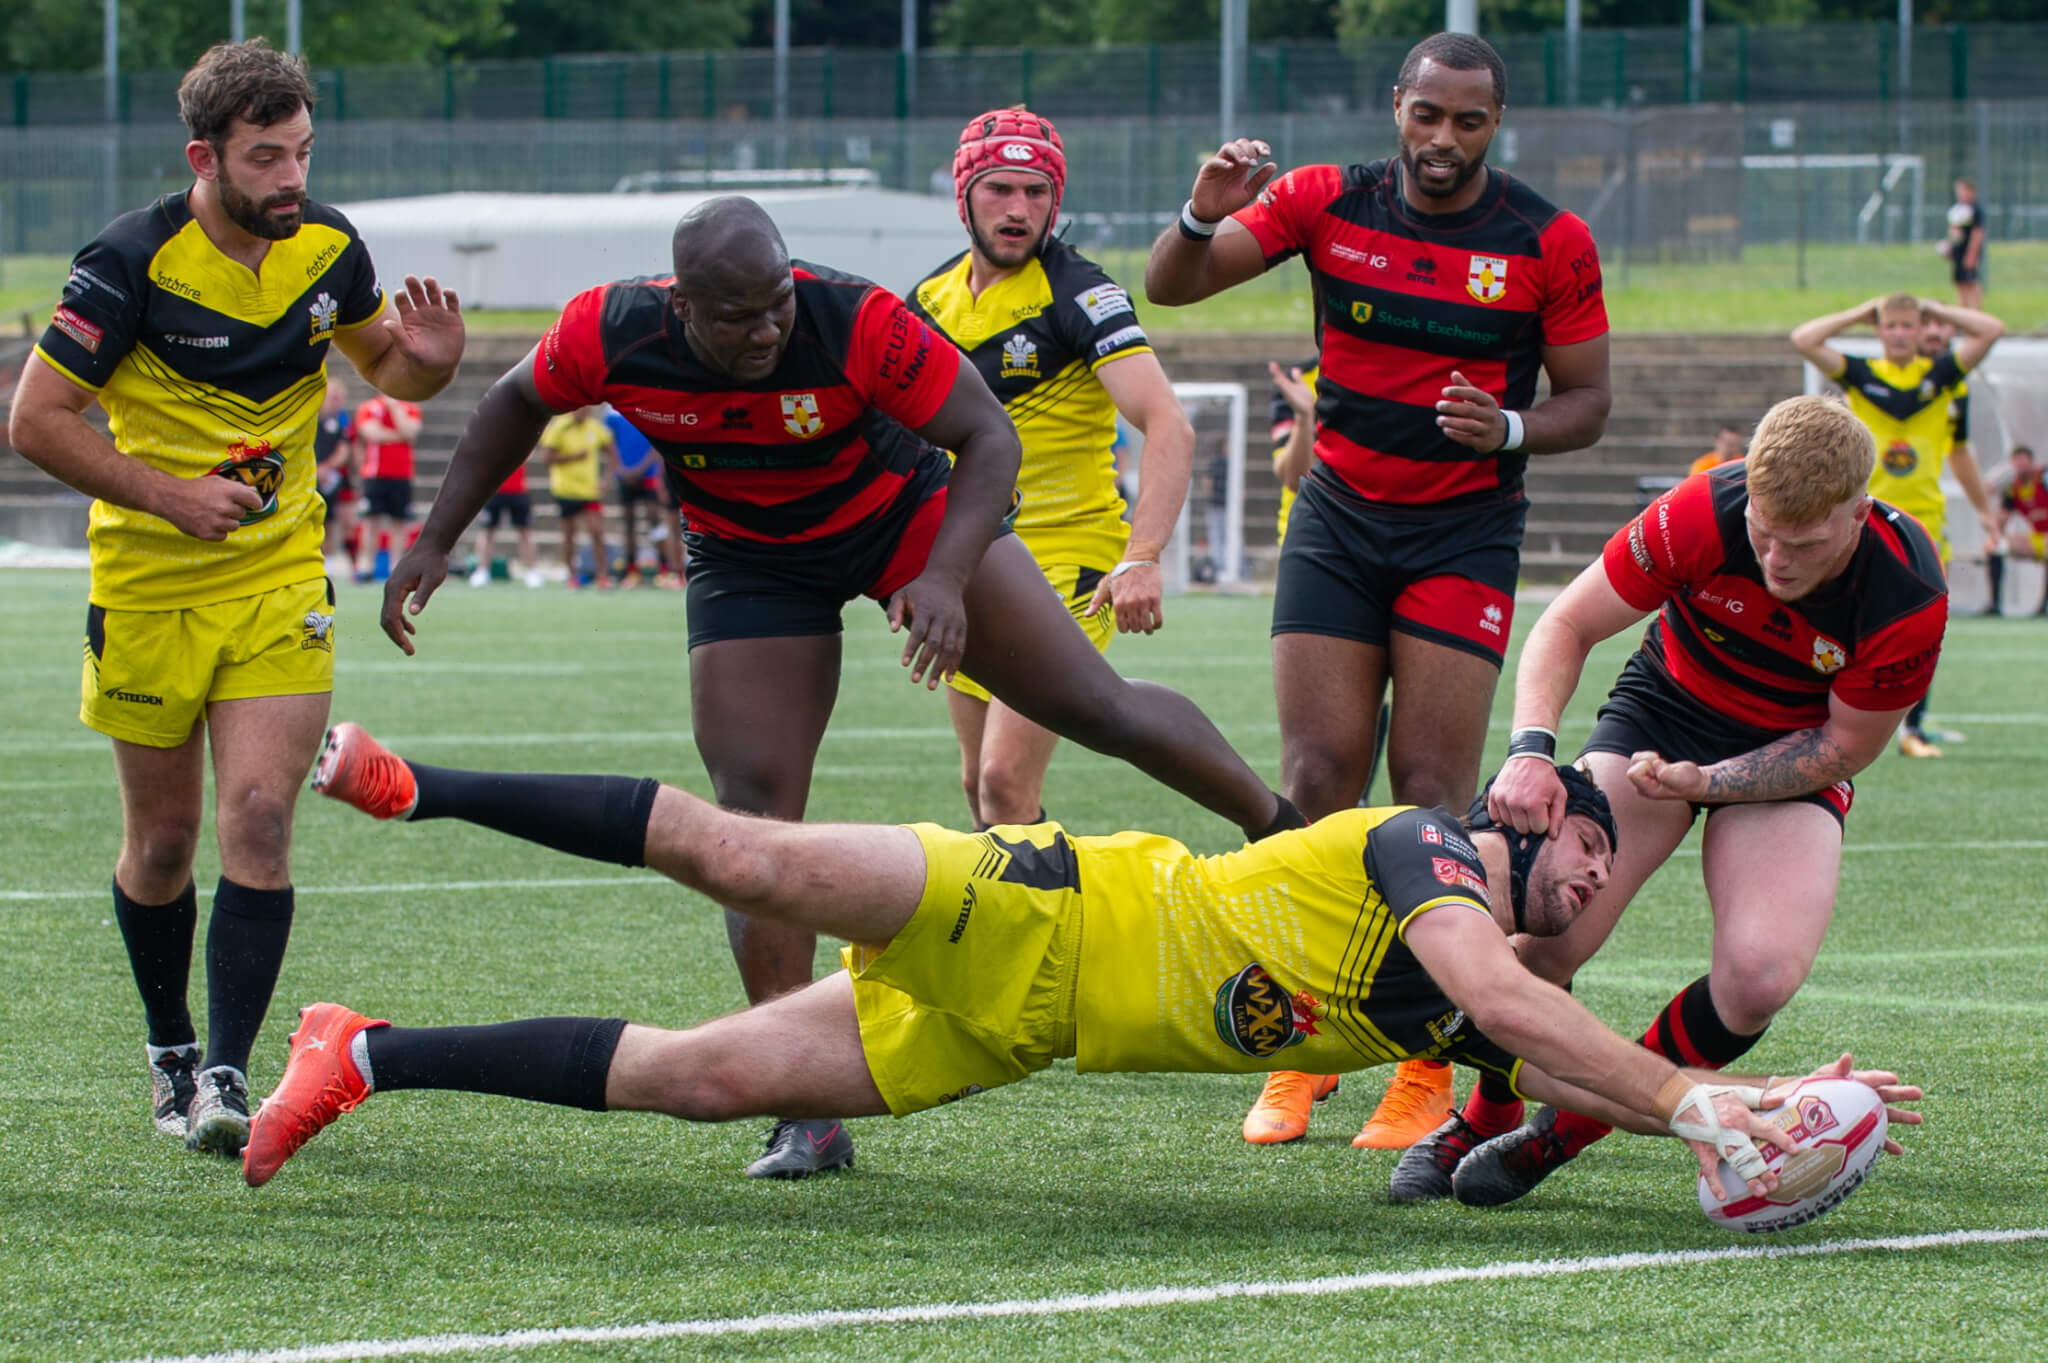 Preview: London Skolars v North Wales Crusaders